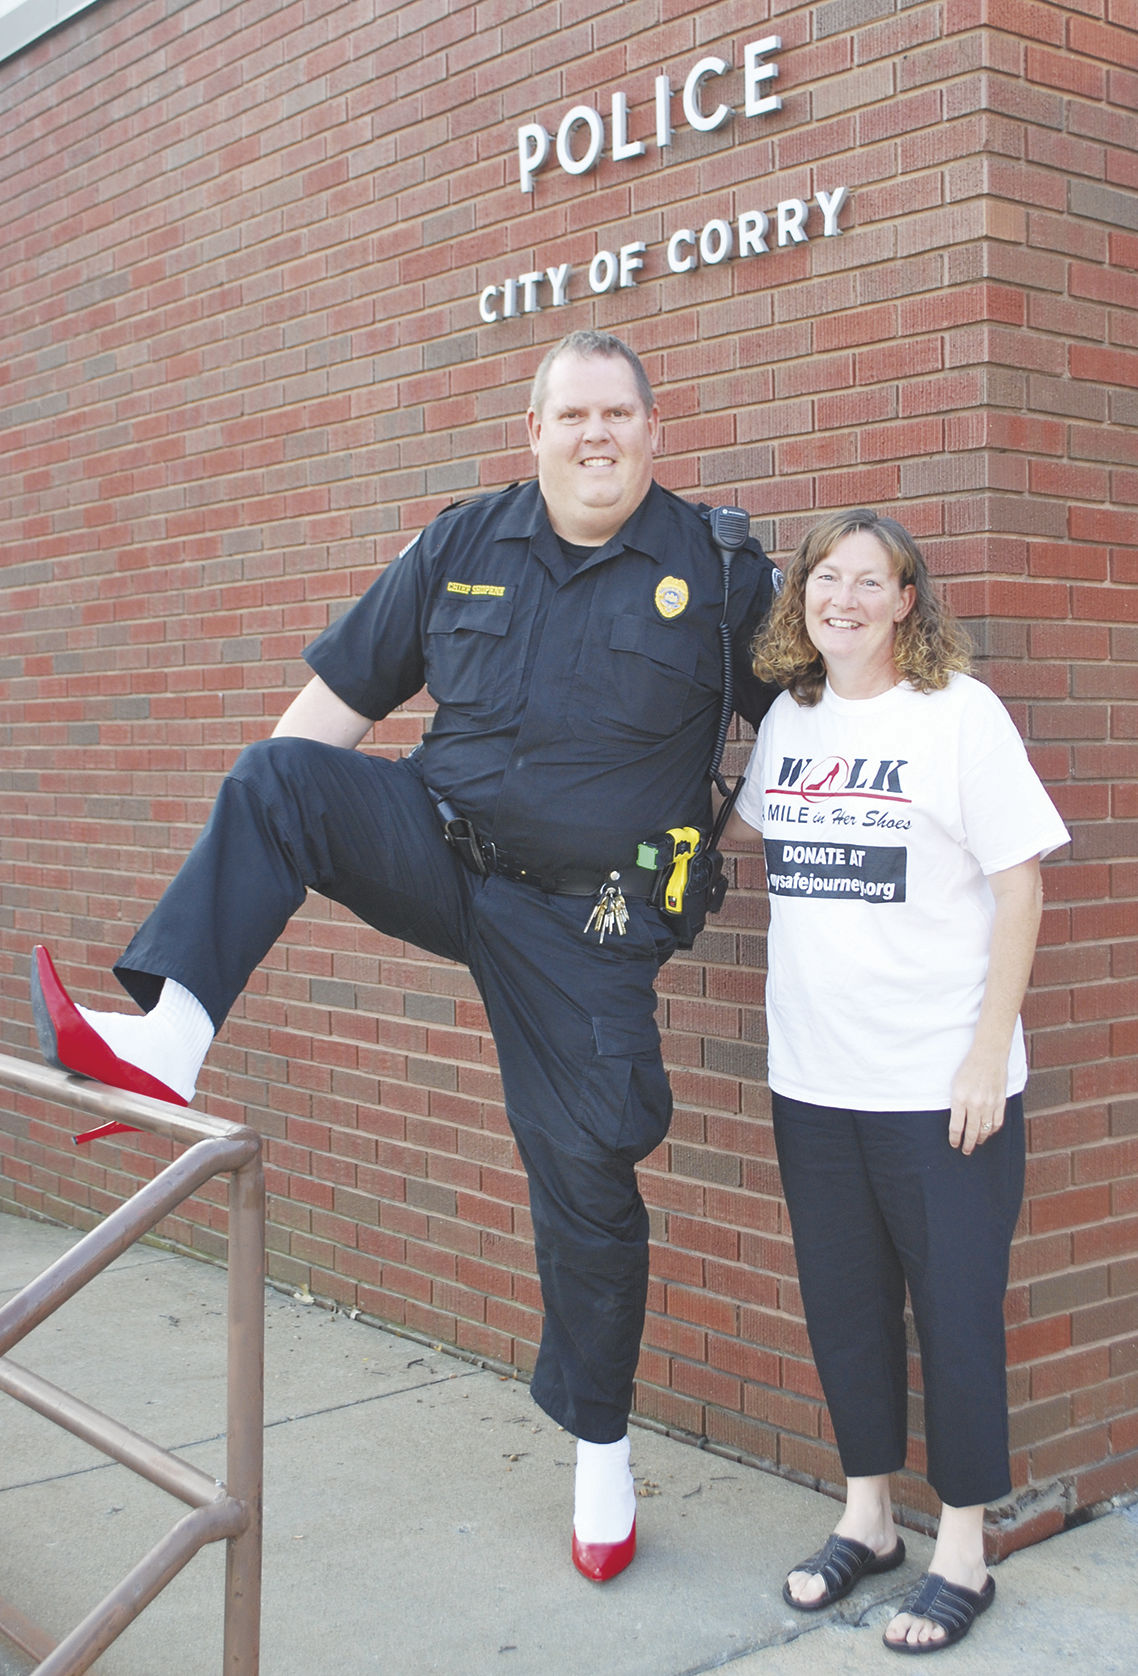 Annual domestic violence awareness event marches into town Oct. 7